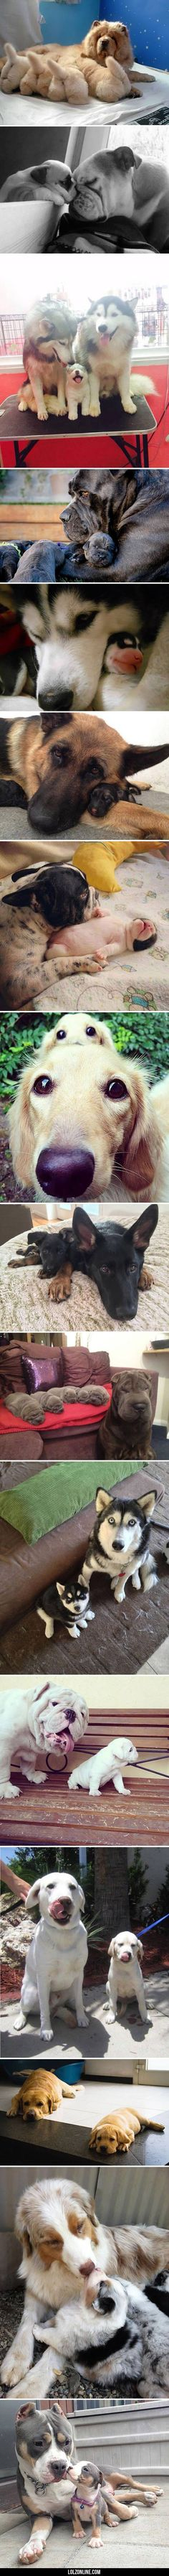 Dogs And Their Cute Mini-Mes#funny #lol #lolzonline